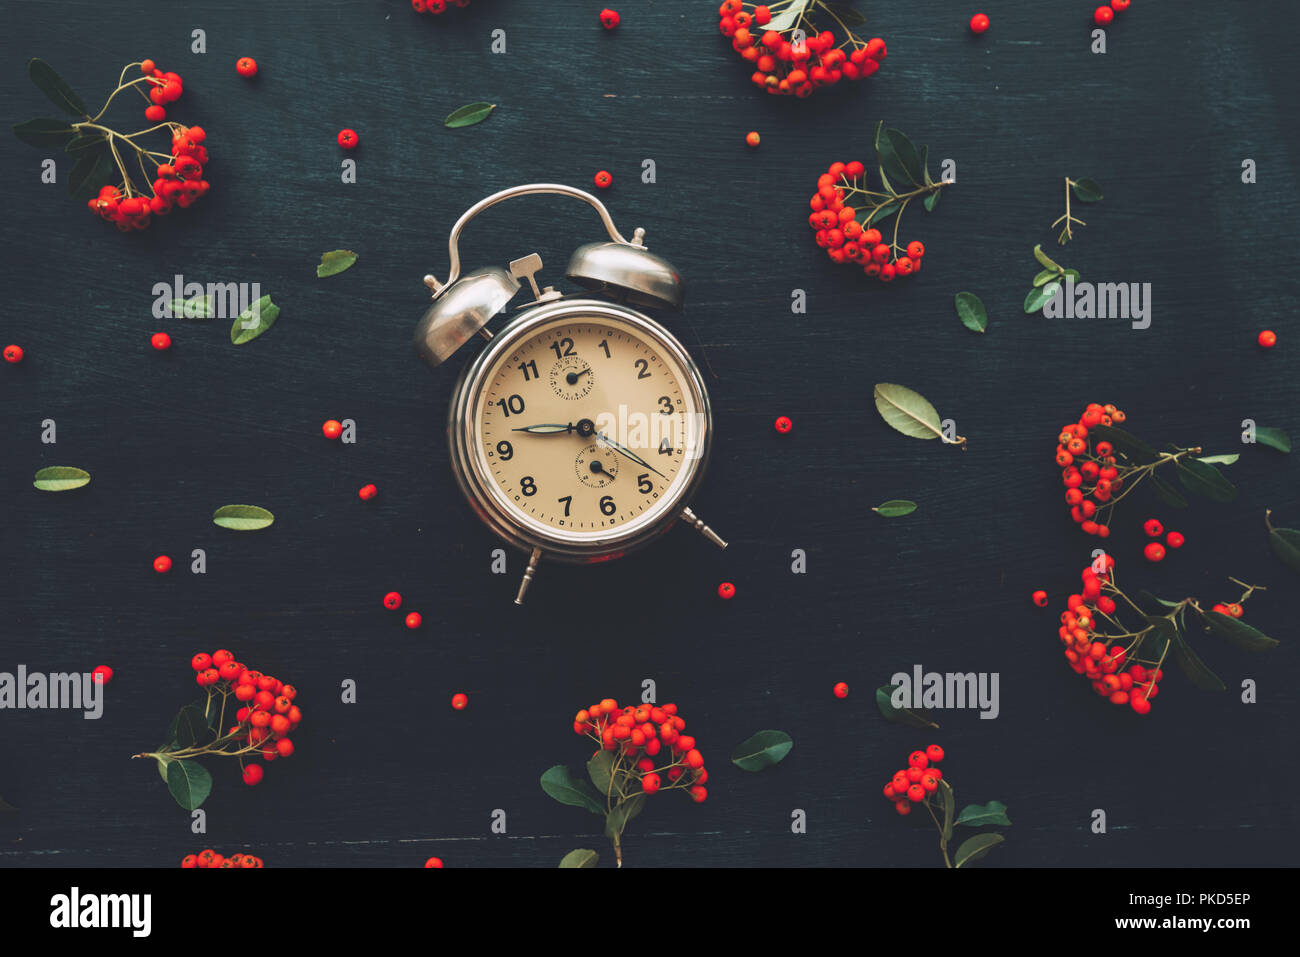 Flat lay vintage alarm clock on dark black background, top view minimal composition with retro floral arrangement Stock Photo